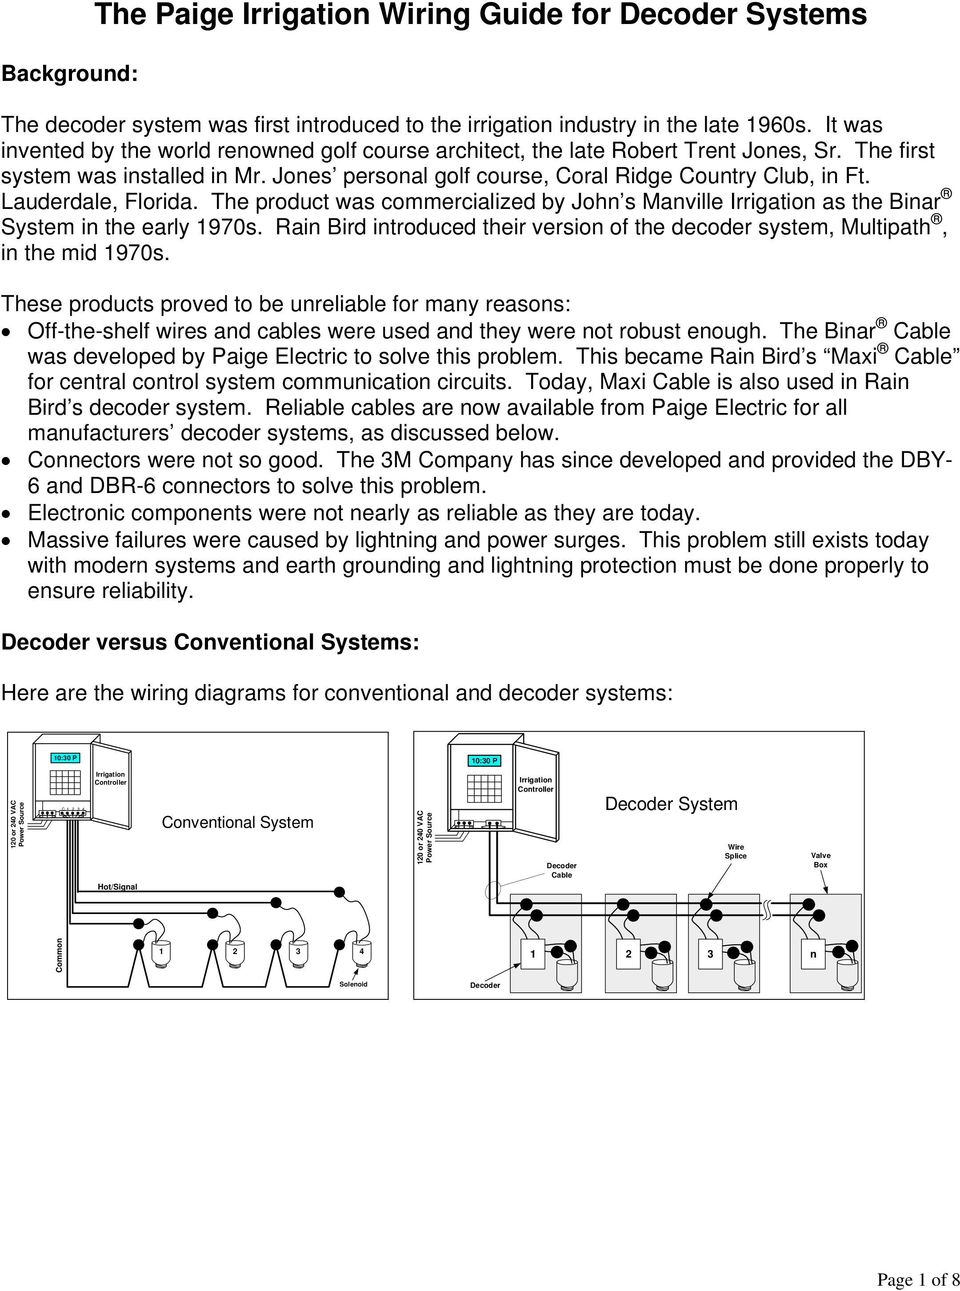 The Paige Irrigation Wiring Guide For Decoder Systems Pdf System Diagram Product Was Commercialized By John S Manville As Binar